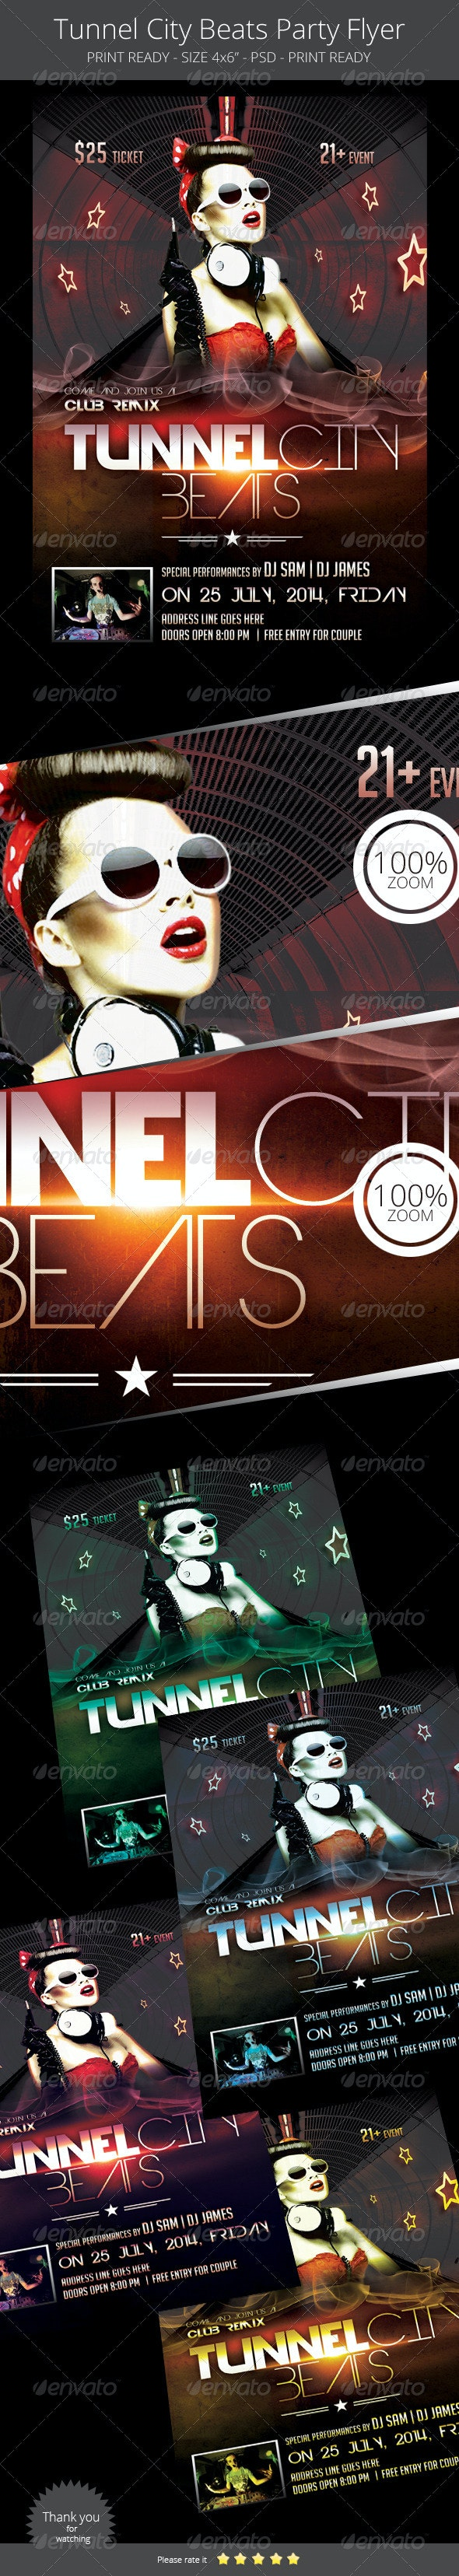 Tunnel City Beats Flyer - Clubs & Parties Events